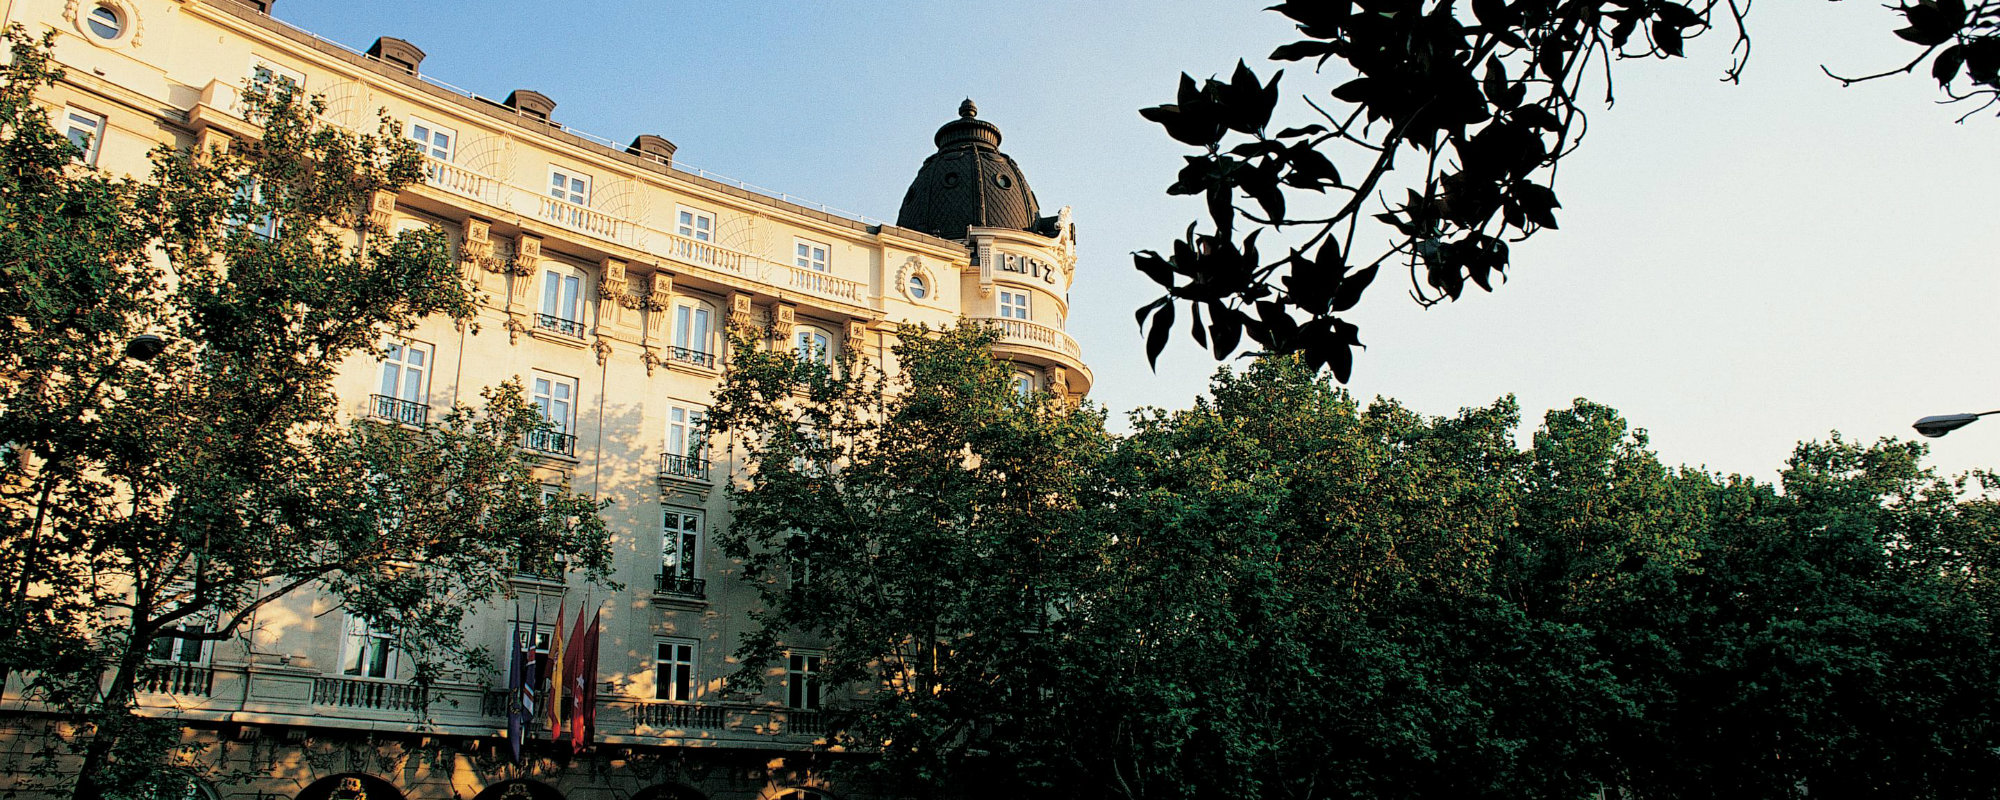 Hotel Ritz – Lujoso Hotel en Madrid Lujoso Hotel Hotel Ritz – Lujoso Hotel en Madrid Featured